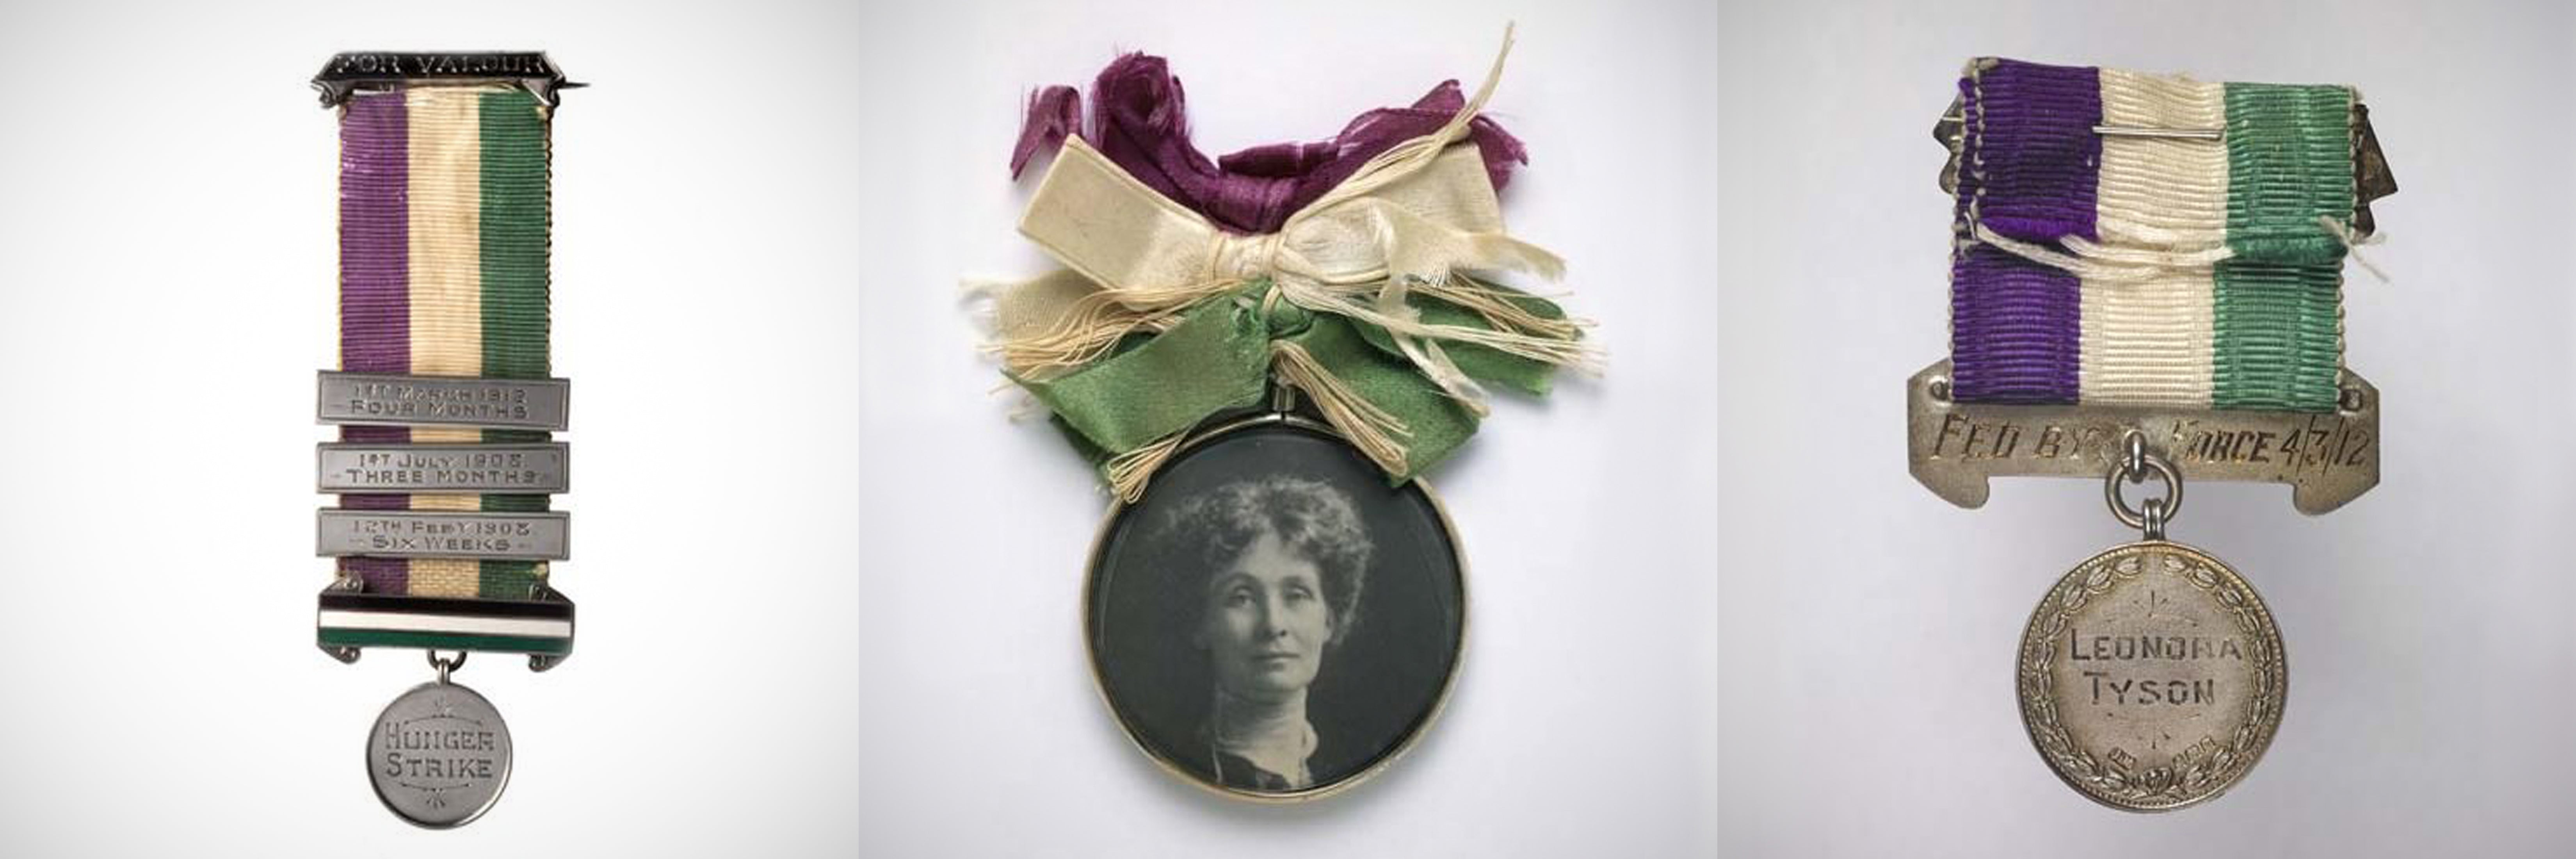 Brooches worn during the suffragettes movement